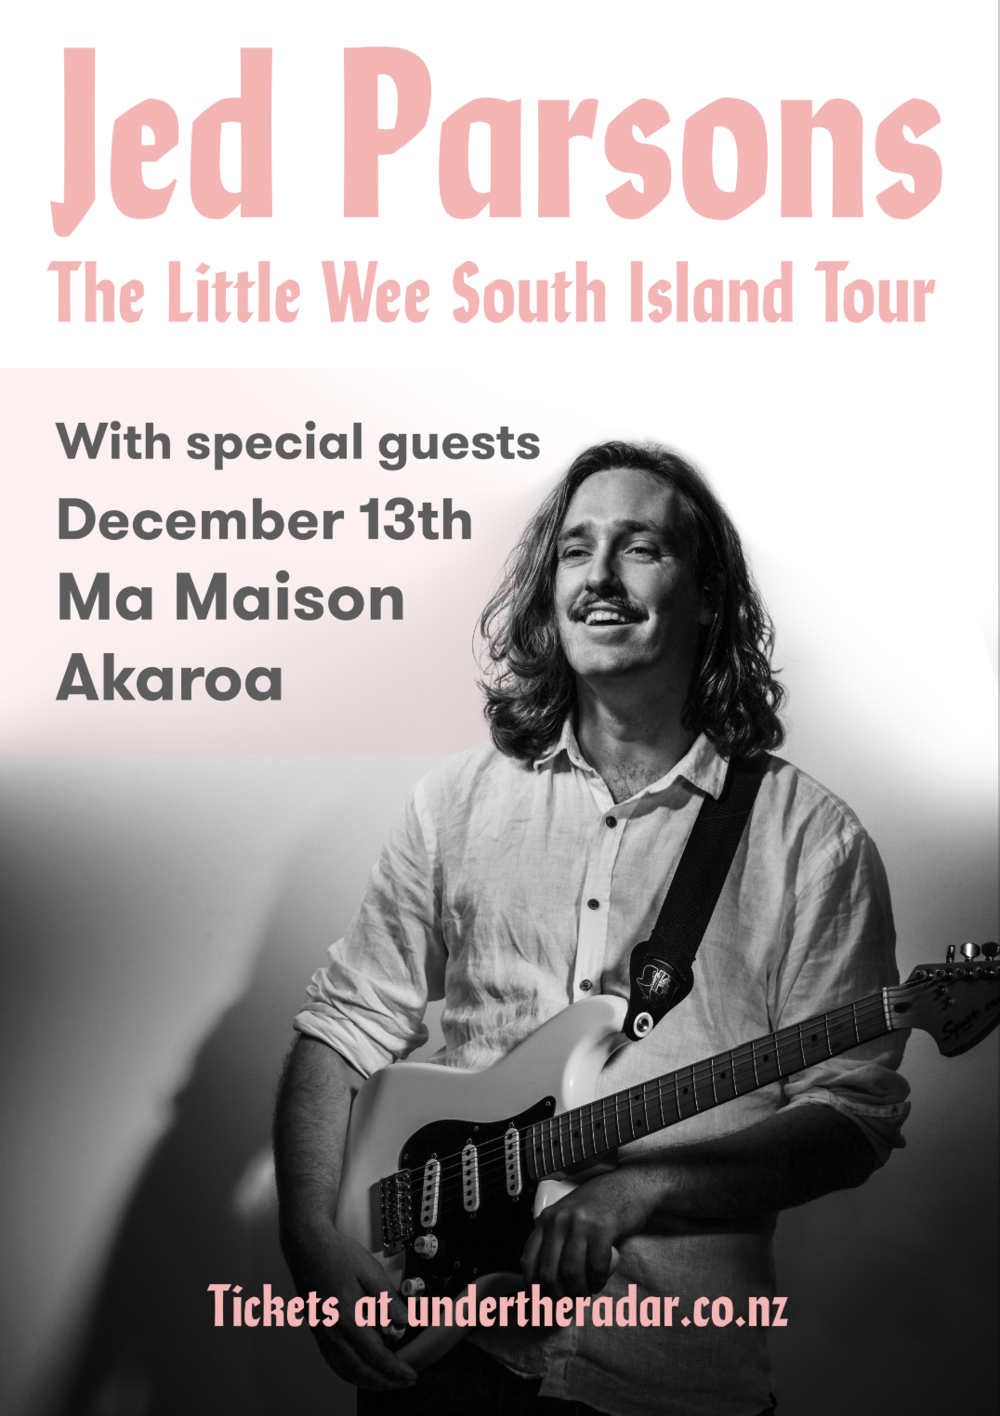 The Little Wee South Island Tour arrives in Akaroa! With special guests.  Following the release of his critically acclaimed debut album 'Midnight Feast' Jed Parsons hits the road for his final outing of 2018, visiting only his favourite parts of the South Island.   This year has been eventful for Parsons. He's toured up and down the country multiple times, hitting stages including those of Auckland City Limits Festival and Nostalgia Festival. Parsons' singles 'Get Lost', 'Everybody's Stupid' and 'Time' were picked up by radio and lead to the release of his debut album 'Midnight Feast'. The album received a 4.5 star review in the Sunday Star Times, amongst other accolades.  Parsons will play songs from Midnight Feast and more on his intimate solo tour, telling stories and bad jokes along the way.